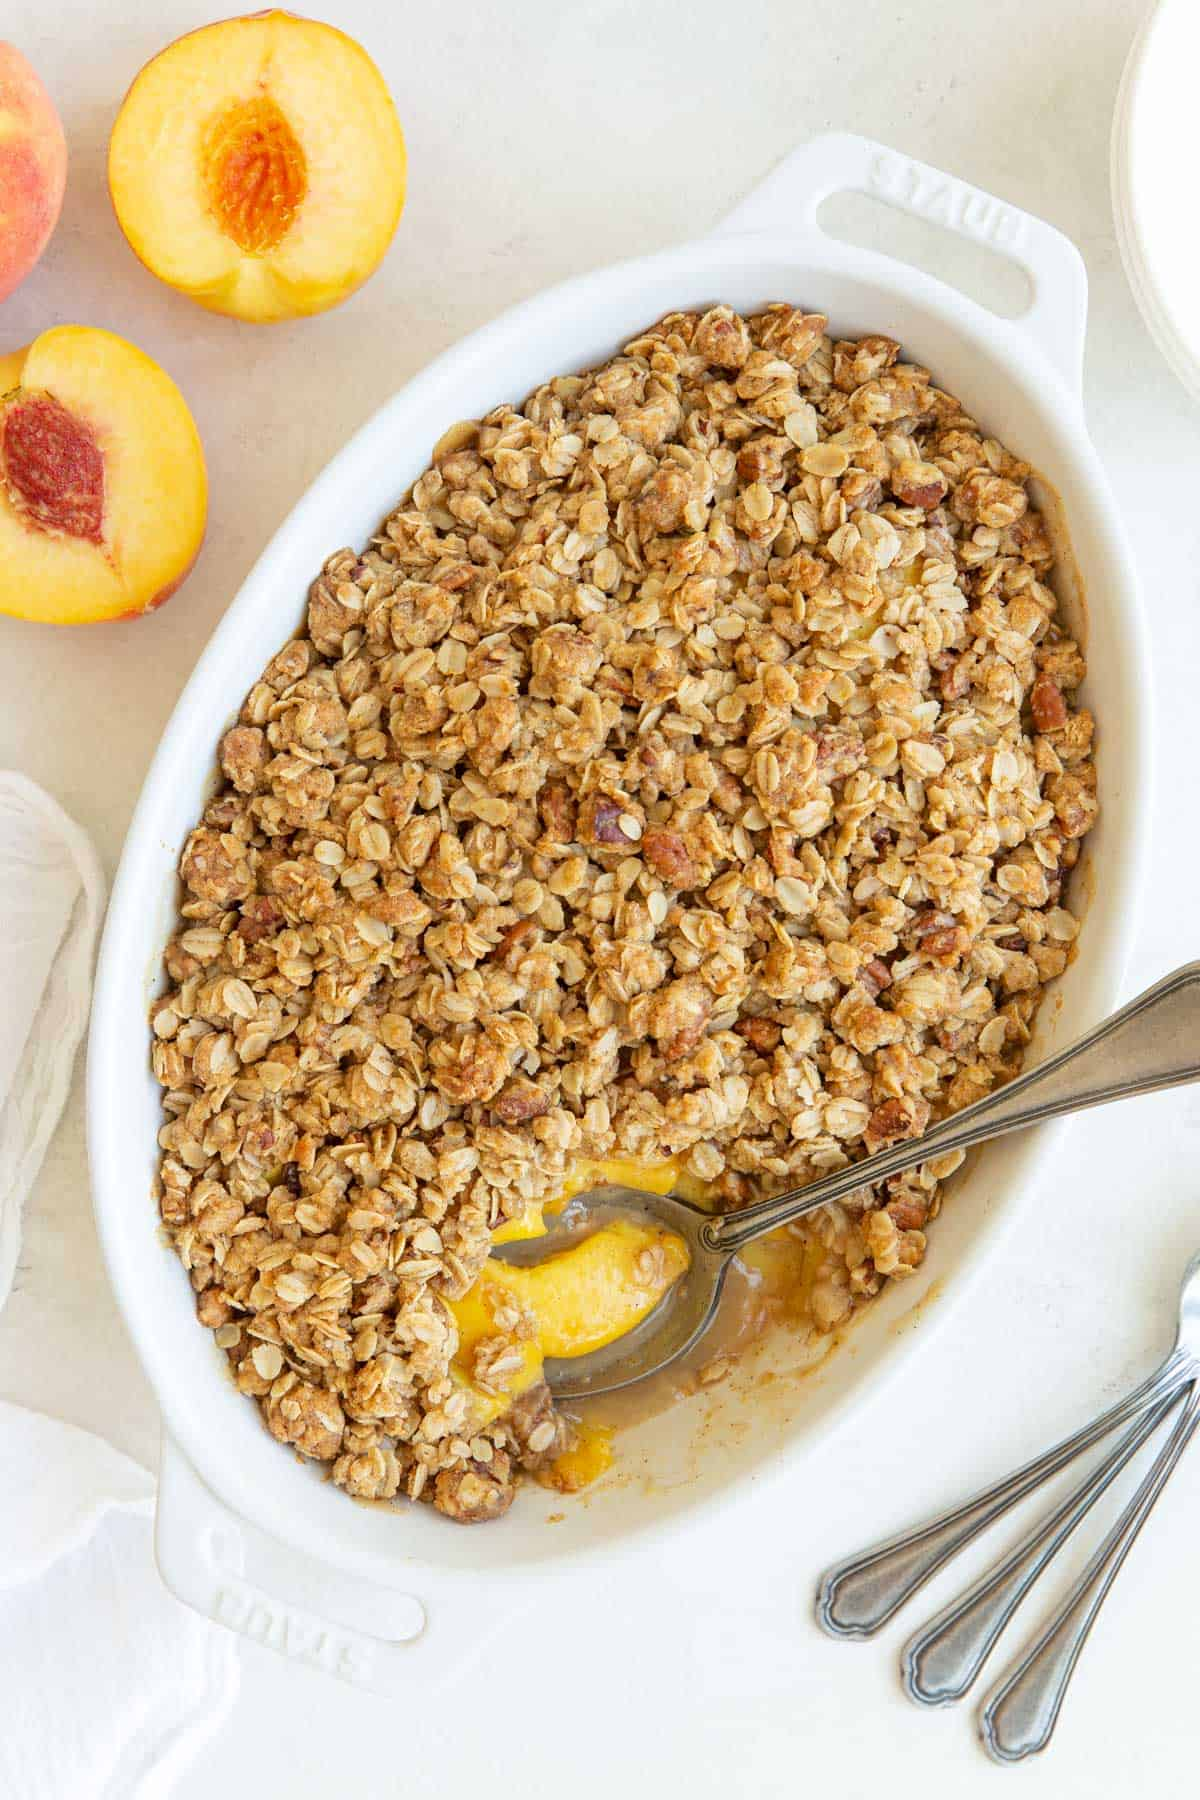 Overhead view of peach crisp in an oval white baking dish with a serving spoon.